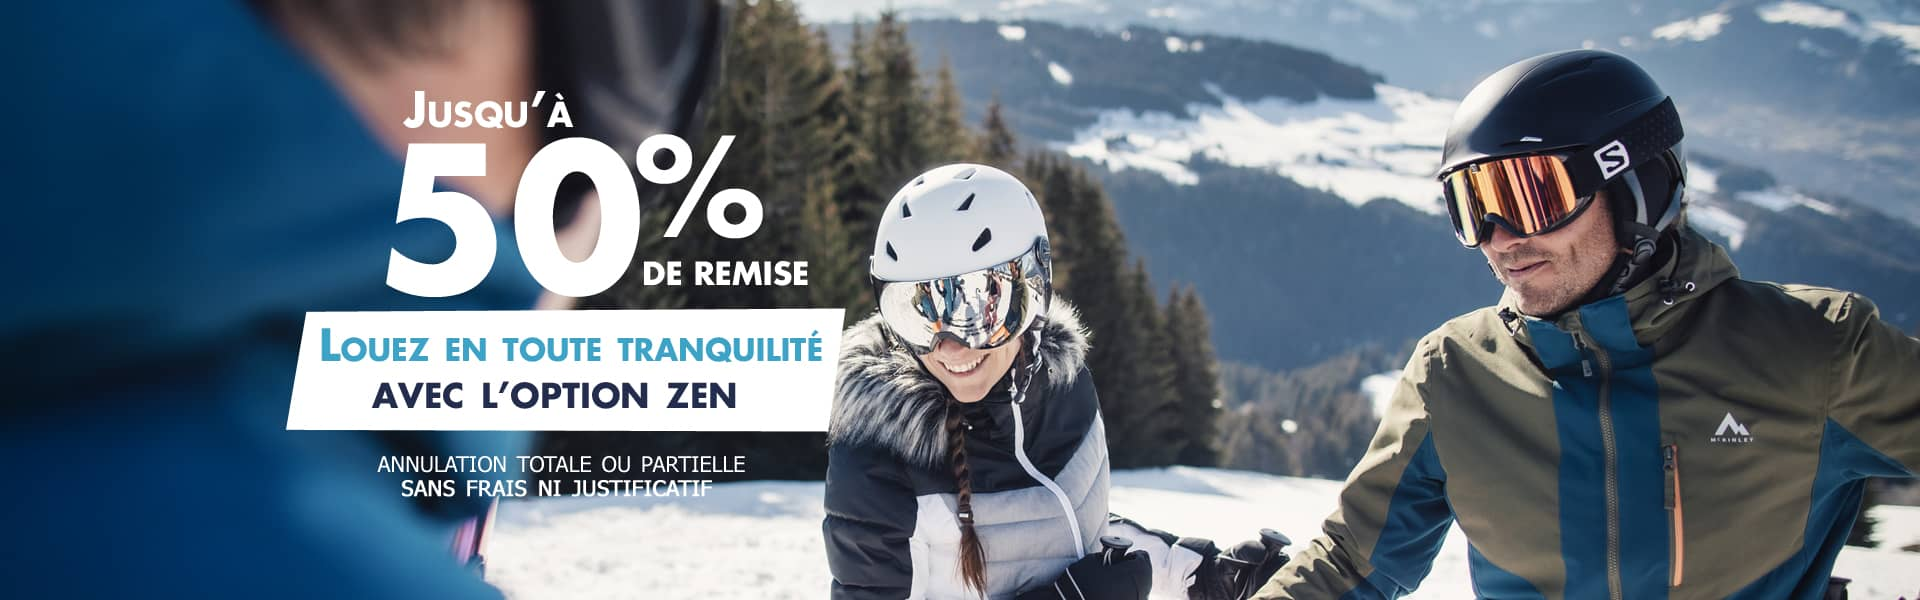 Ski rental Intersport Saint François Longchamp